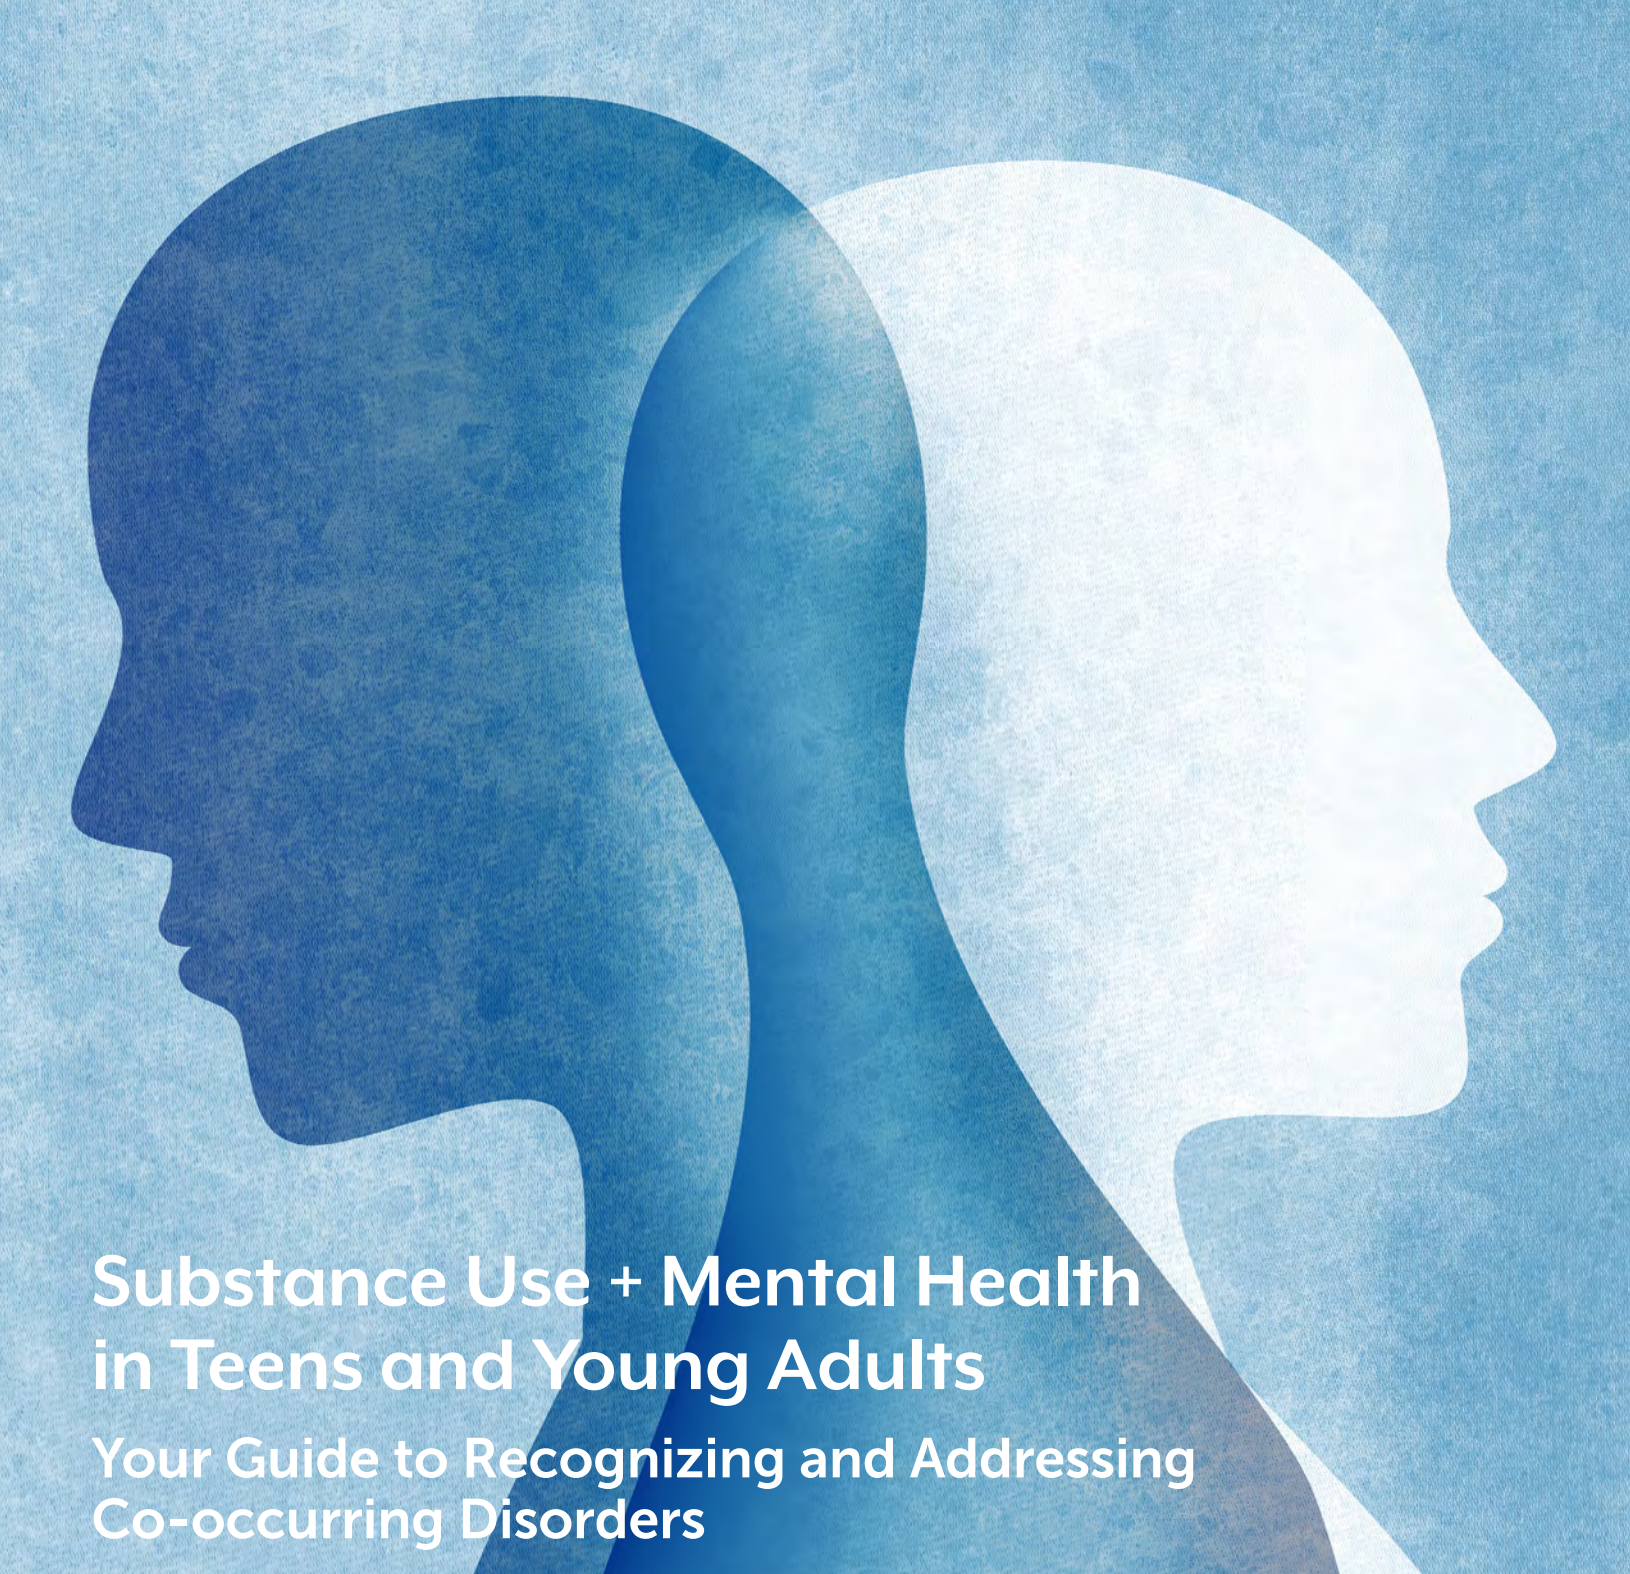 Substance Use + Mental Health in Teens and Young Adults